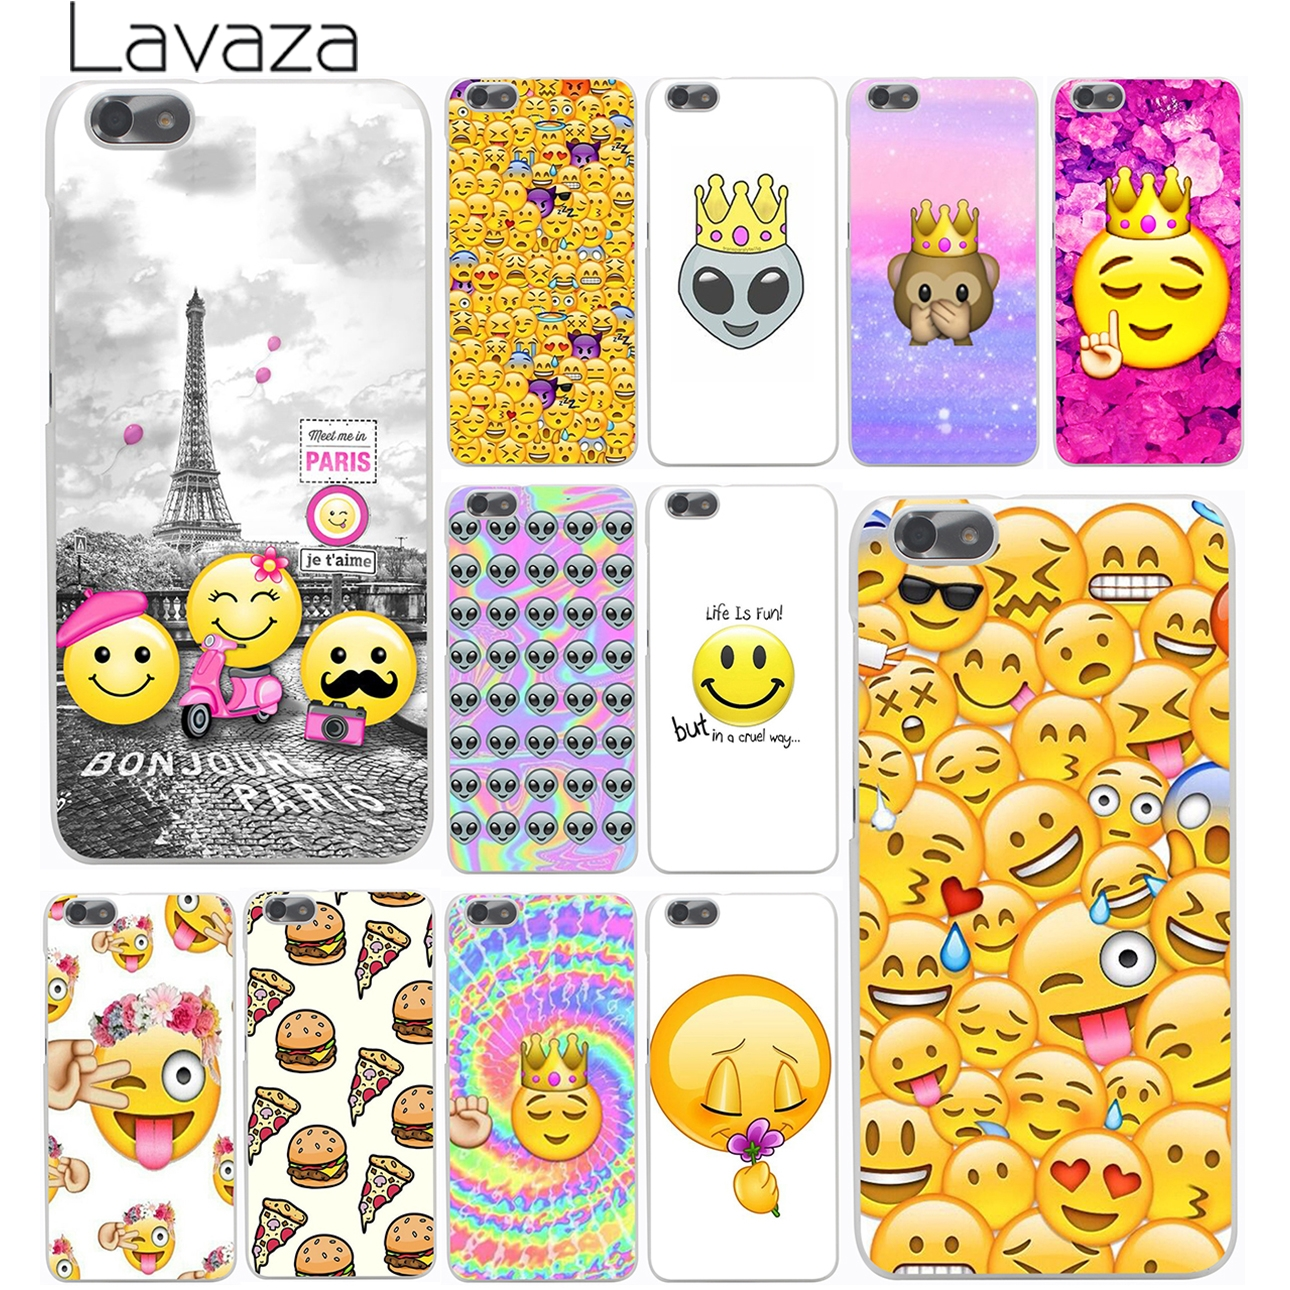 smile Coque Funny Emoji pizz the Eiffel Tower phone Hard Case for Huawei P9 P8 Lite P9 Plus P7 6 G7 & Honor 4C 4X 7 6